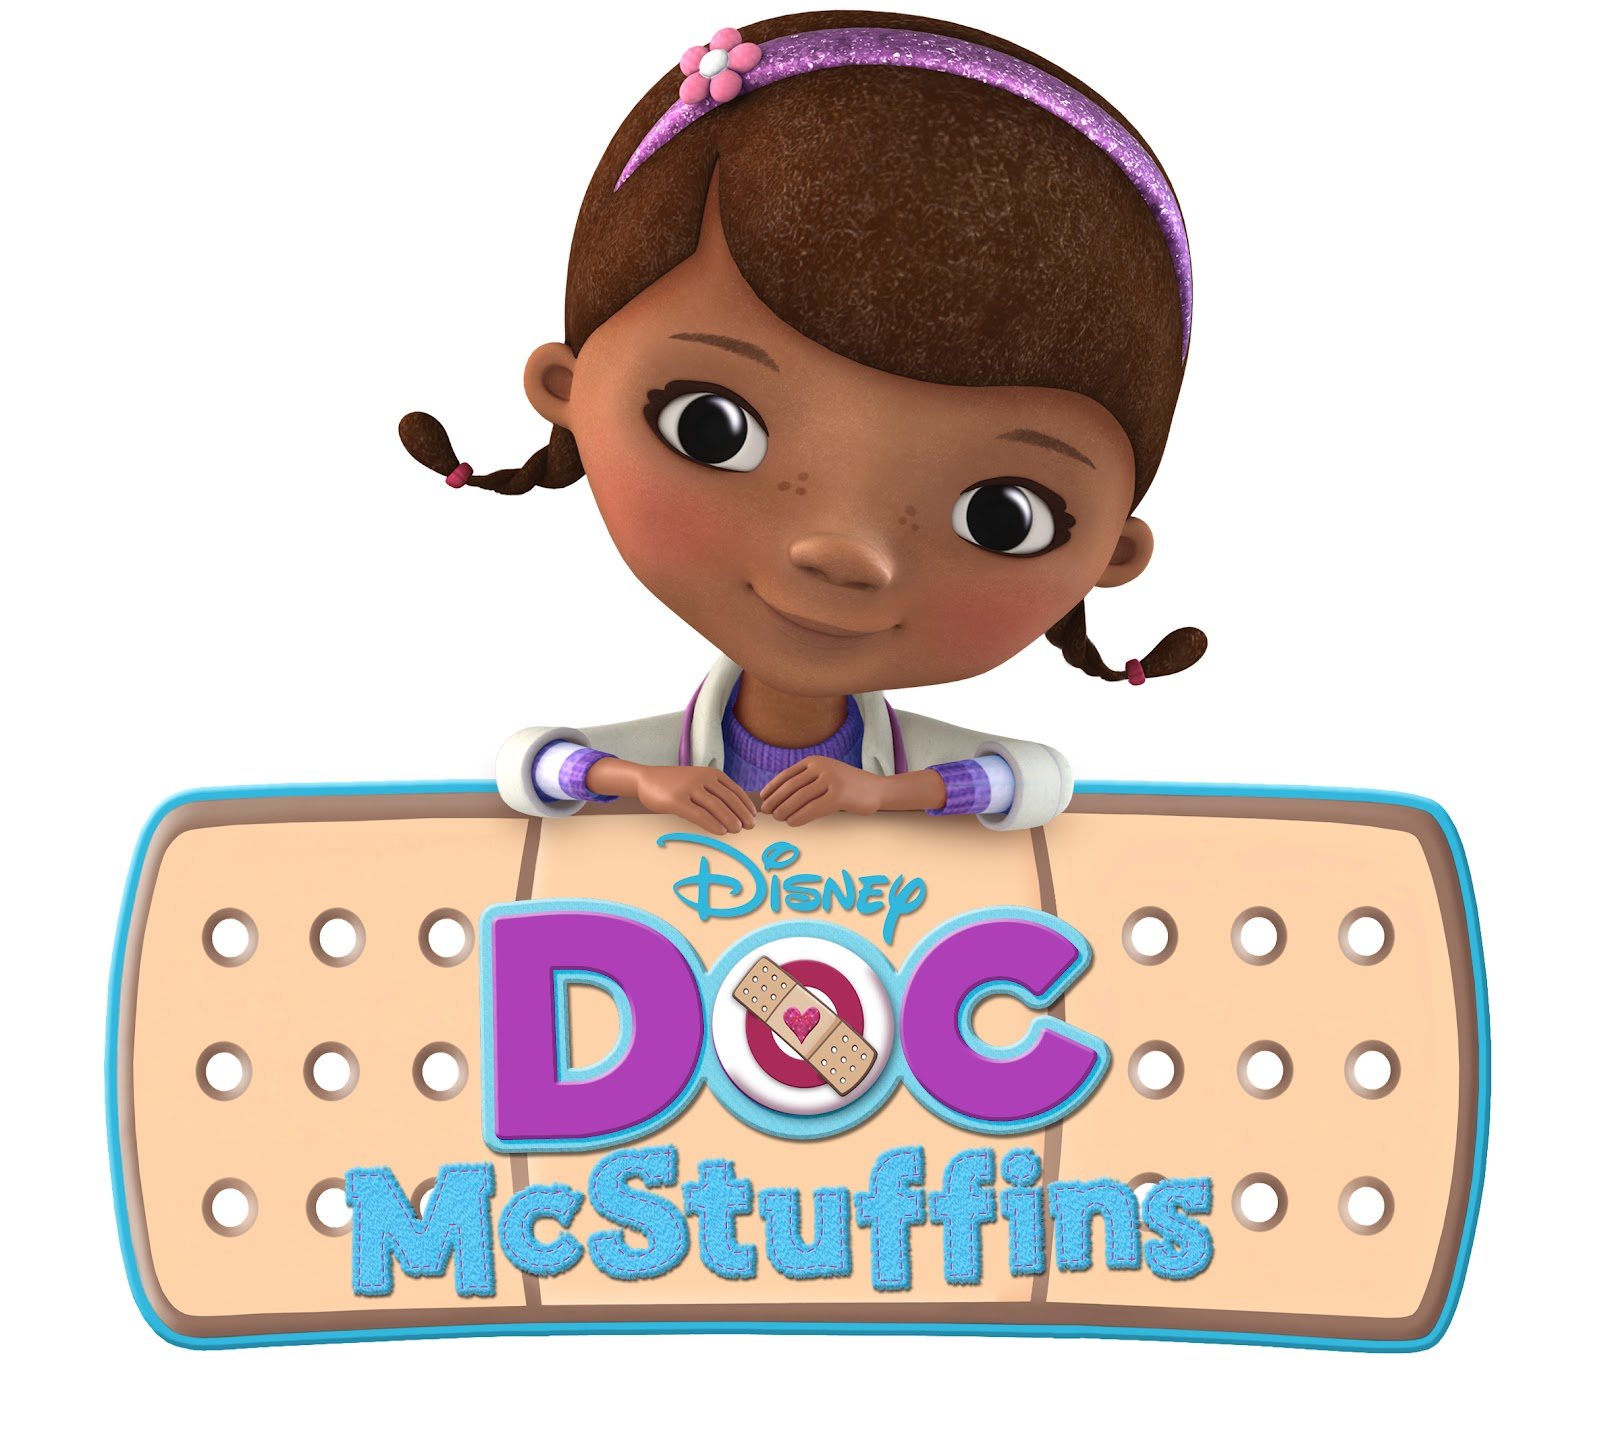 Check out these great Doc McStuffins themed free printables!